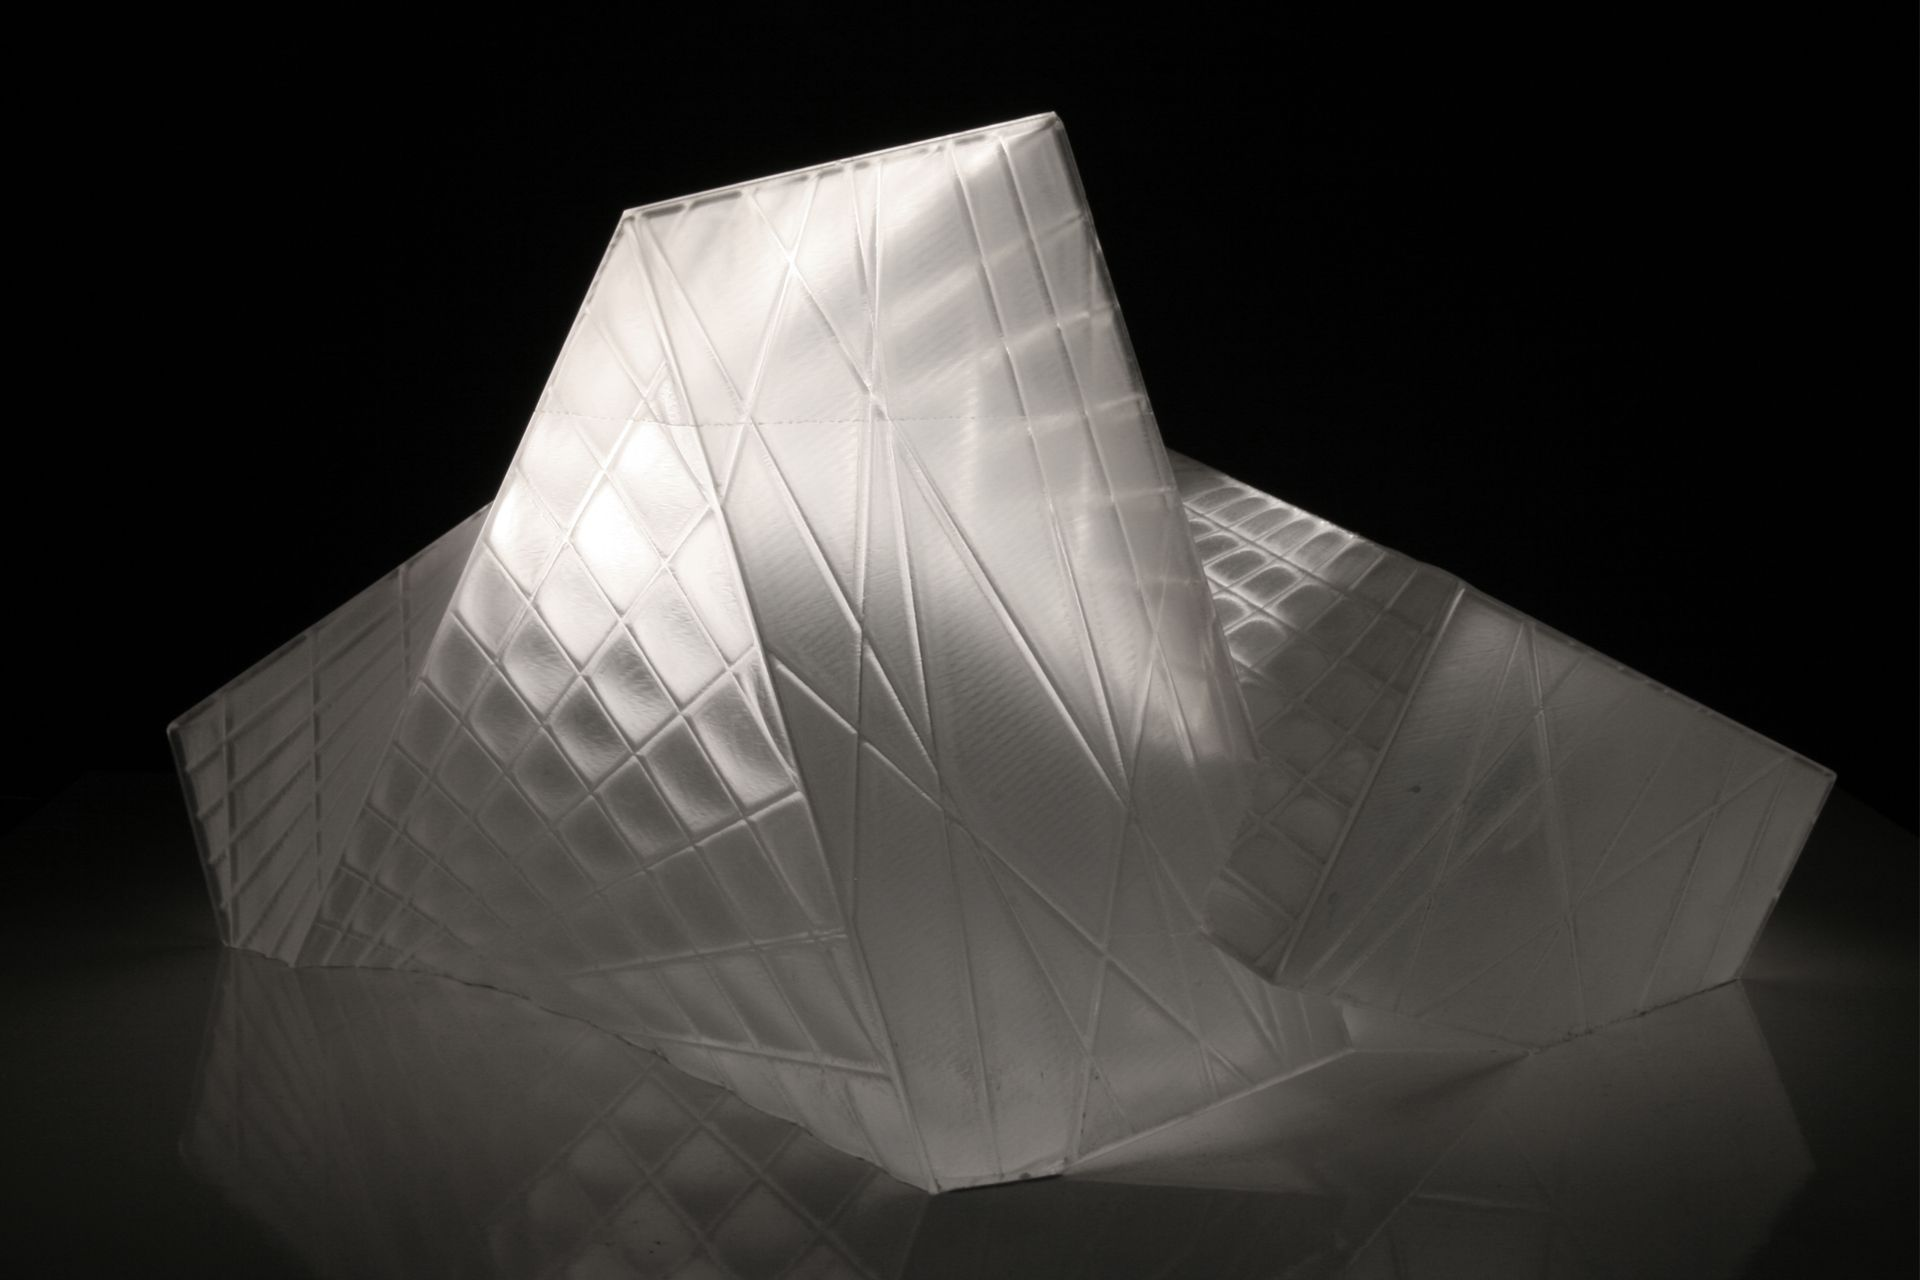 This crystalline envelope shelters the visitor without cutting him or her off from the surrounding landscape. As a mental space for prayer rather than an isolated enclosure, the landscape is of essential atmospheric importance and is invited to interact with the building's interior. The technological functions necessary for a modern theatre are submerged in the ground so that the stage can be used flexibly for a range of purposes.